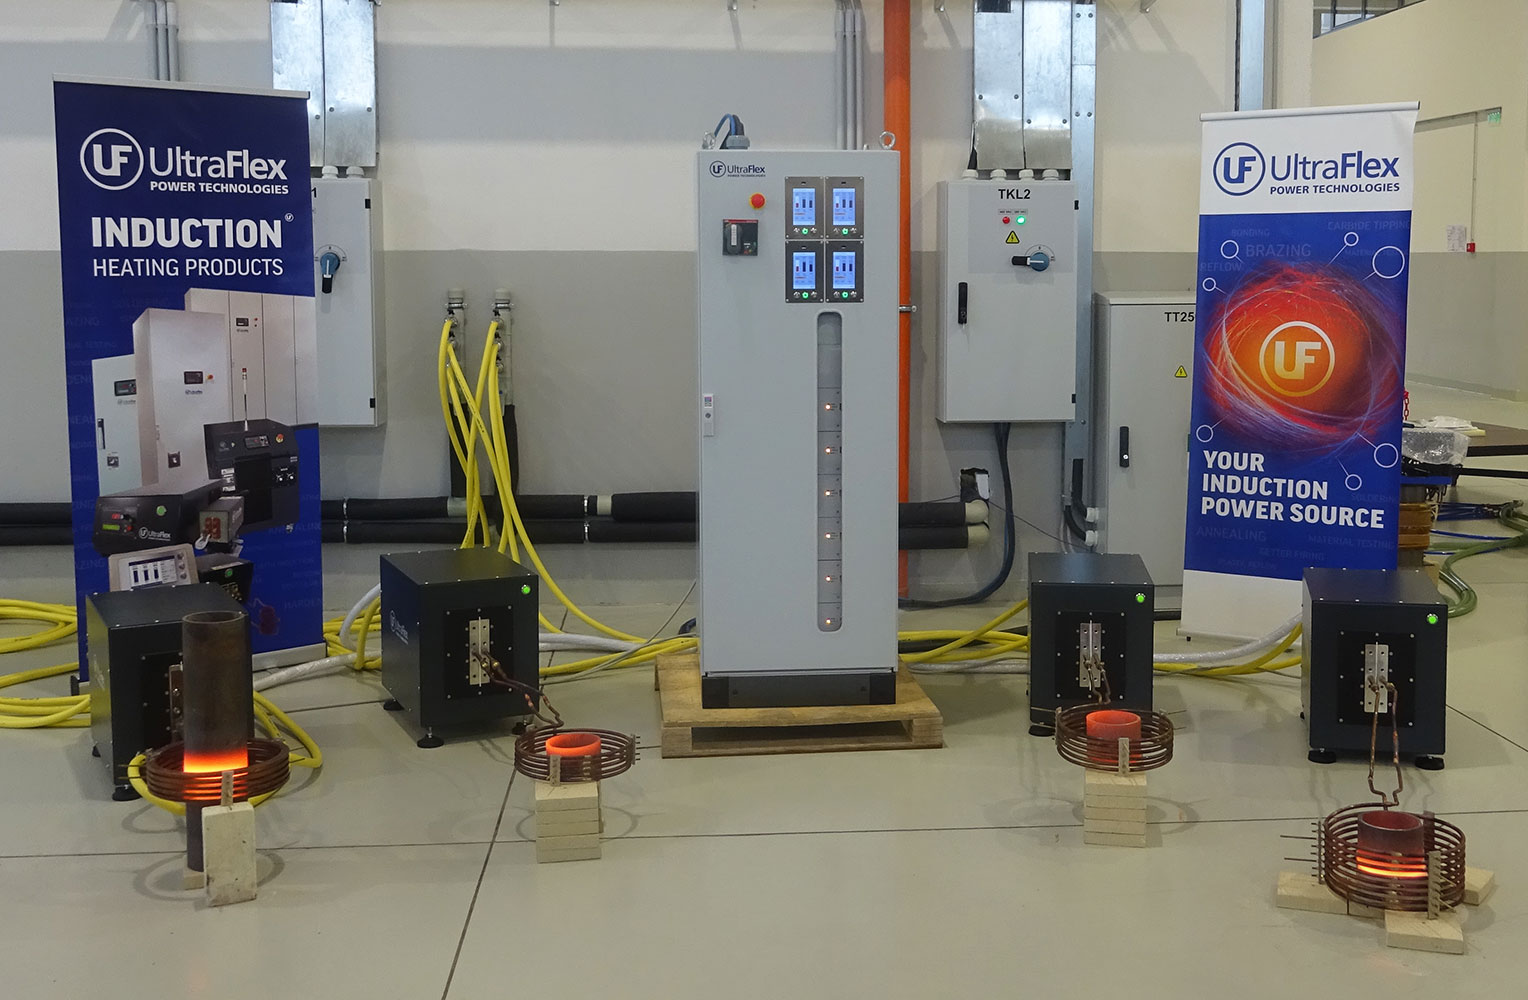 Smart Power operating with four heat stations